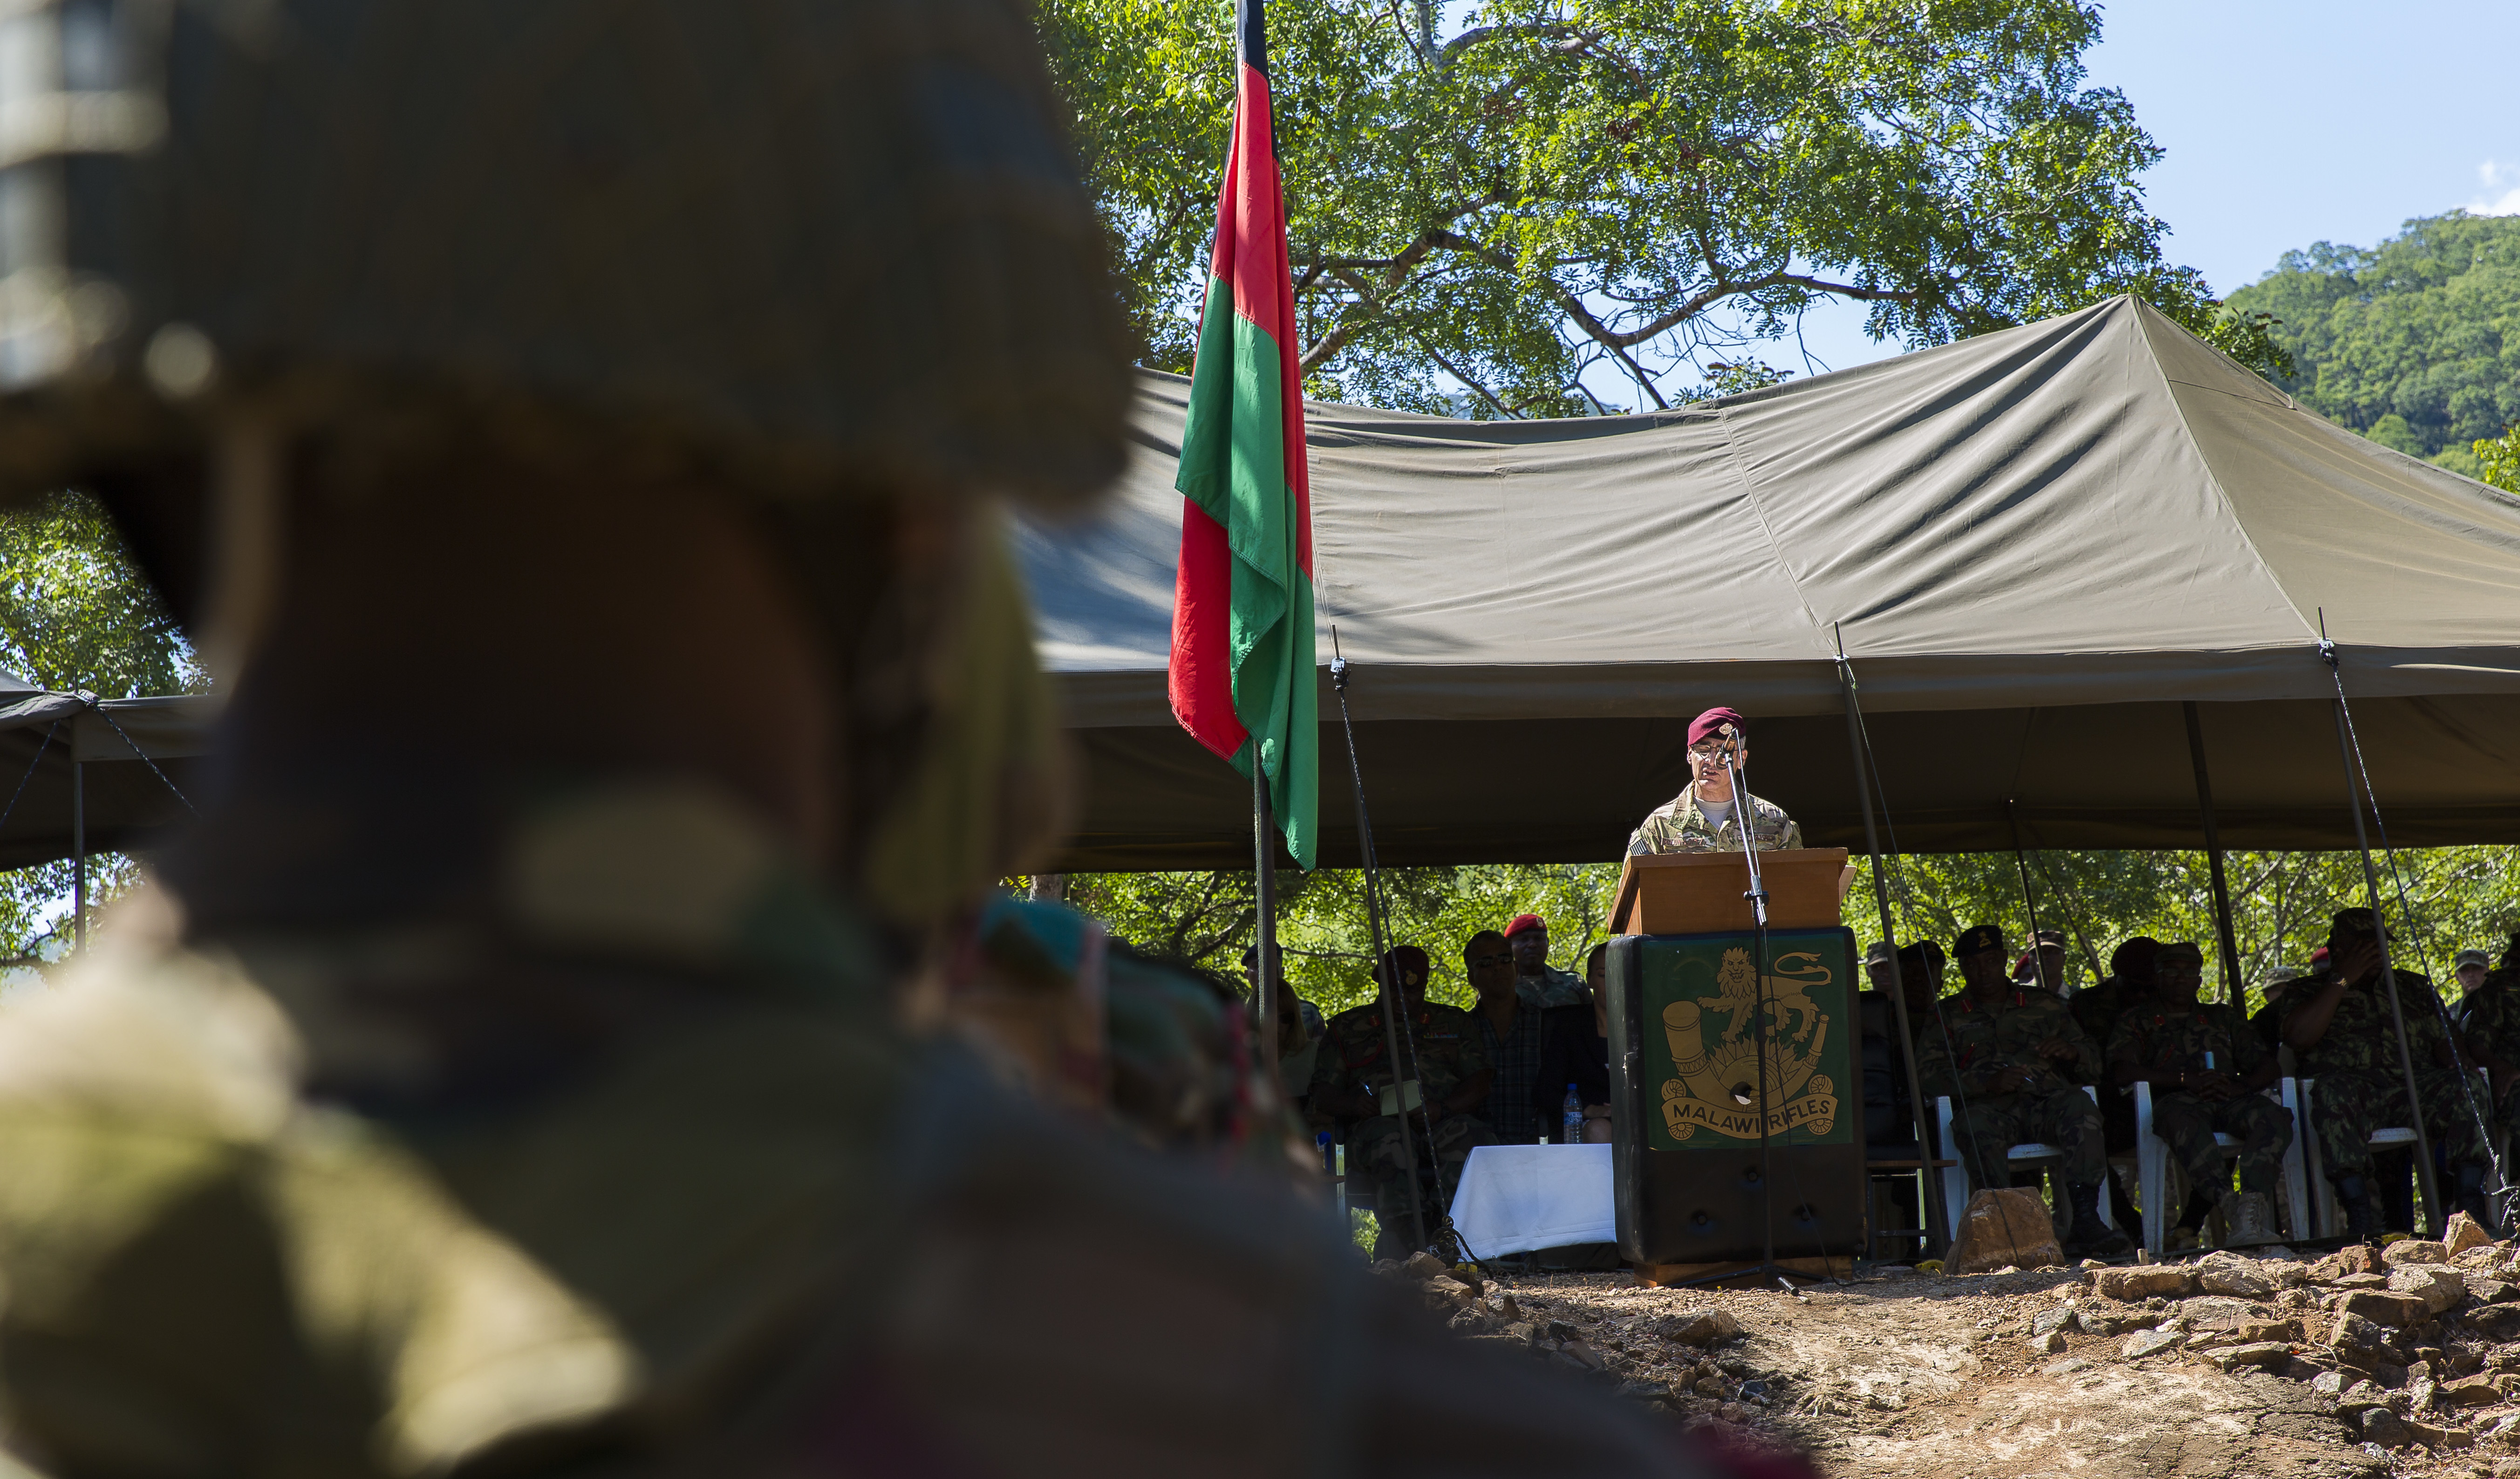 U.S. Africa Command Senior Enlisted Leader Command Chief Master Sgt. Ramon Colon-Lopez conducts a speech at the Malawi Battalion Training Site Graduation Ceremony on May 31, 2018 in Malawi, Africa. Colon-Lopez congratulates the soldiers on the hard work and perseverance and wishes them luck on their upcoming deployment. Colon-Lopez travelled to Malawi to meet with the Malawi Defence Force, engaging with both senior officer and enlisted leadership as part of a three-day tour. The visit included a follow-up on issues addressed by the MDF during the Africa Senior Enlisted Leader Conference in November 2017, as well as assess the MDF's capability to train and sustain Peace Keeping Operations Forces.